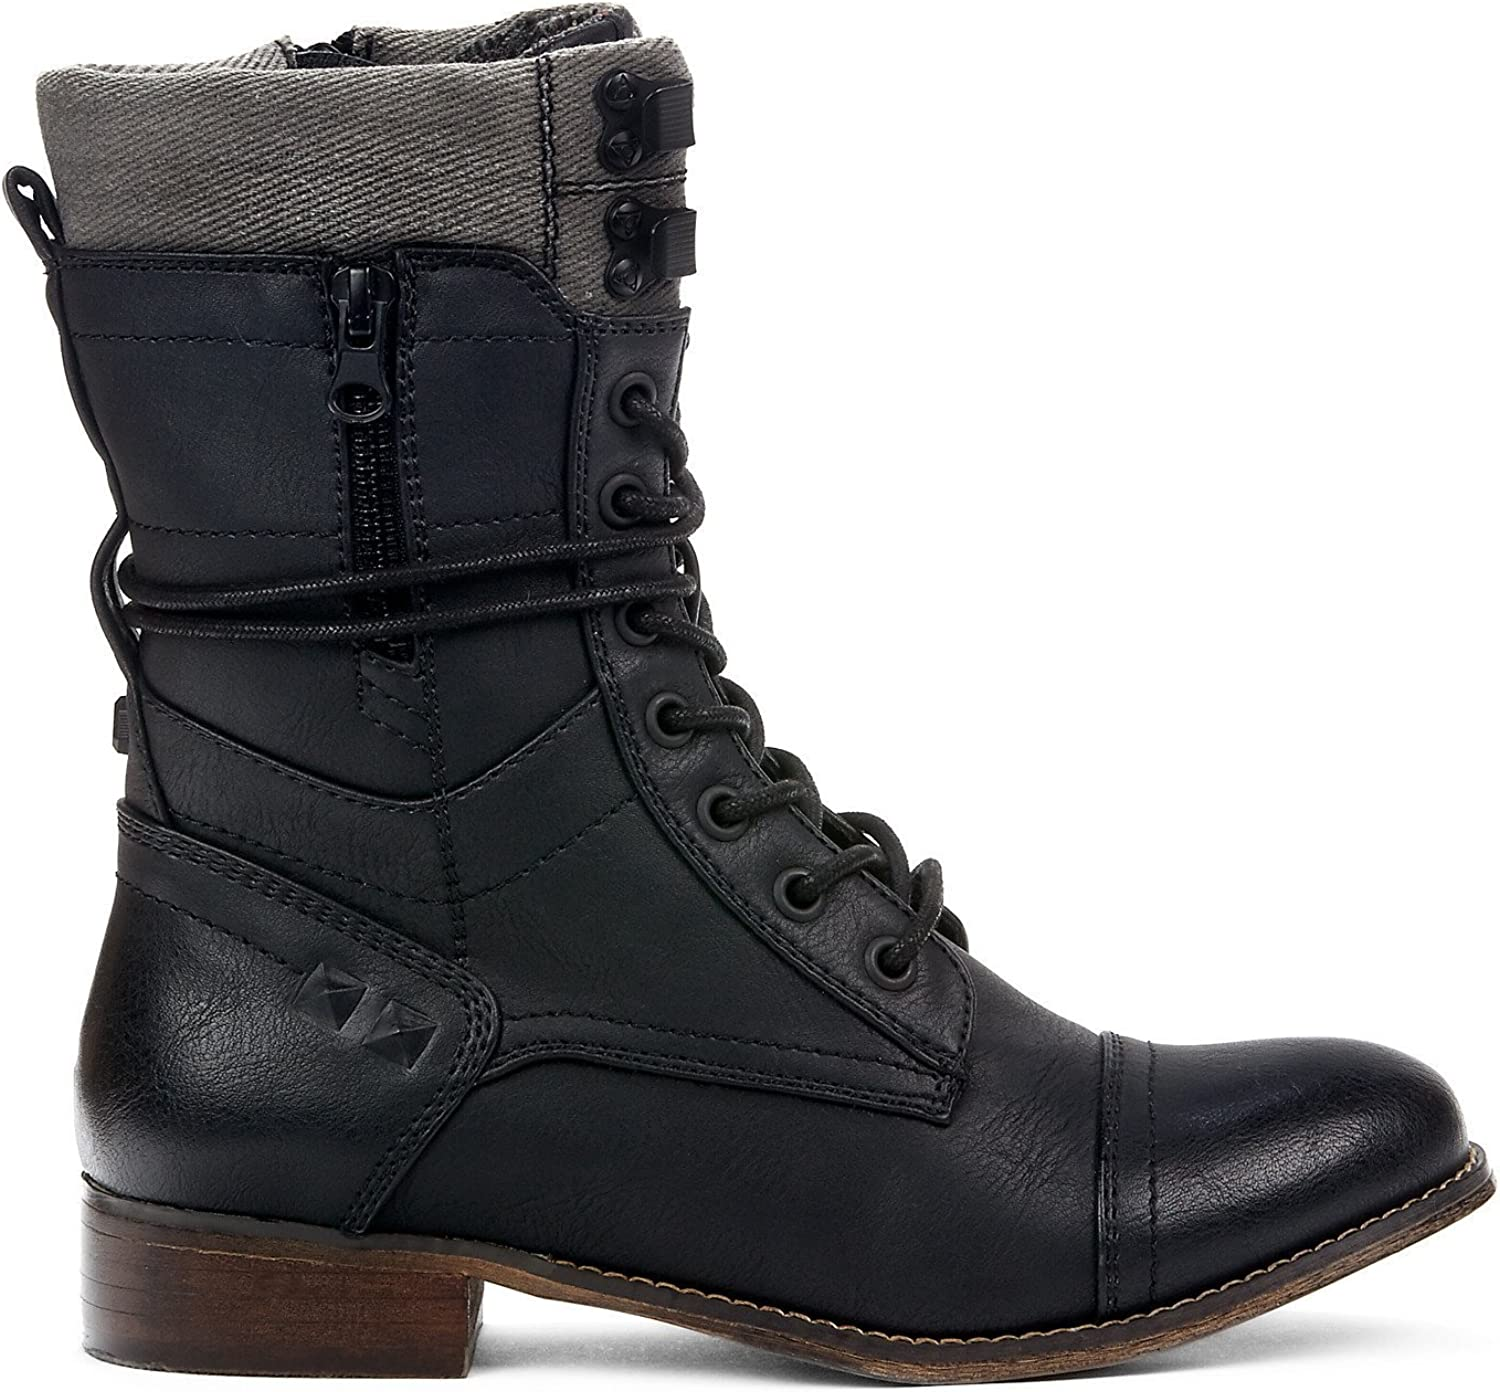 SEATTLE Women Black Combat Boots - Perfect for Spring Fall Winter - Casual & Comfortable & Trendy & Fashion - Calf High Low Block Heel Made from Synthetic Leather & Memory Foam - Army Military Laced Up Toe Cap Style